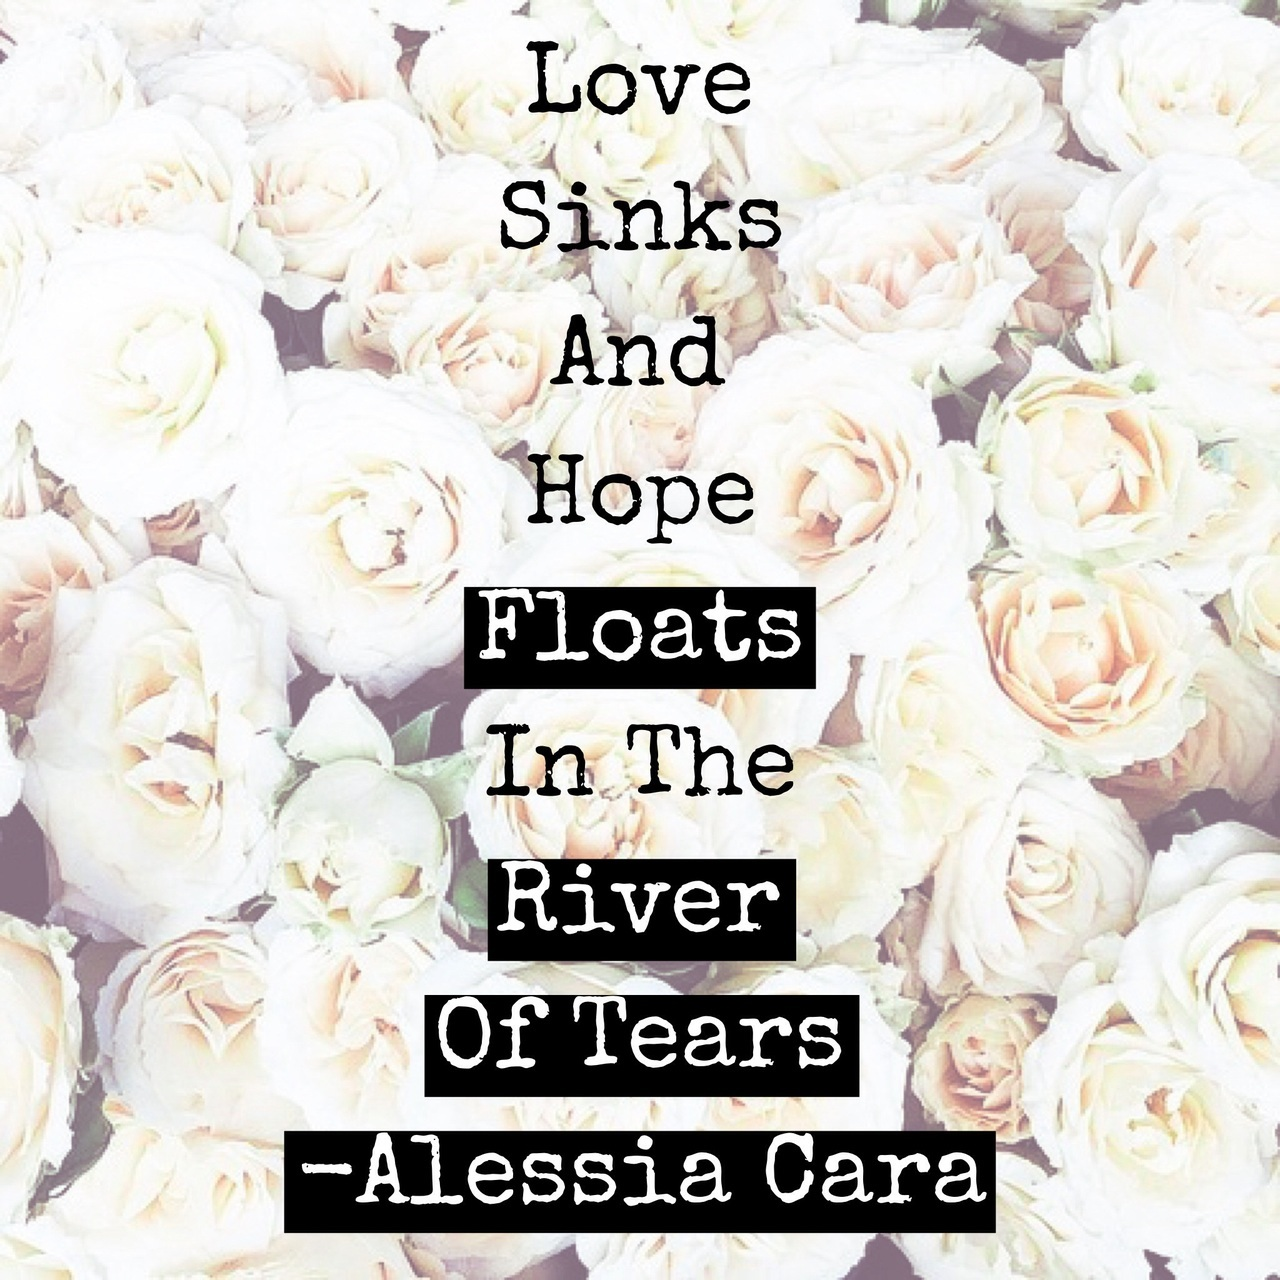 Love Sinks And Hope Floats In The River Of Tears